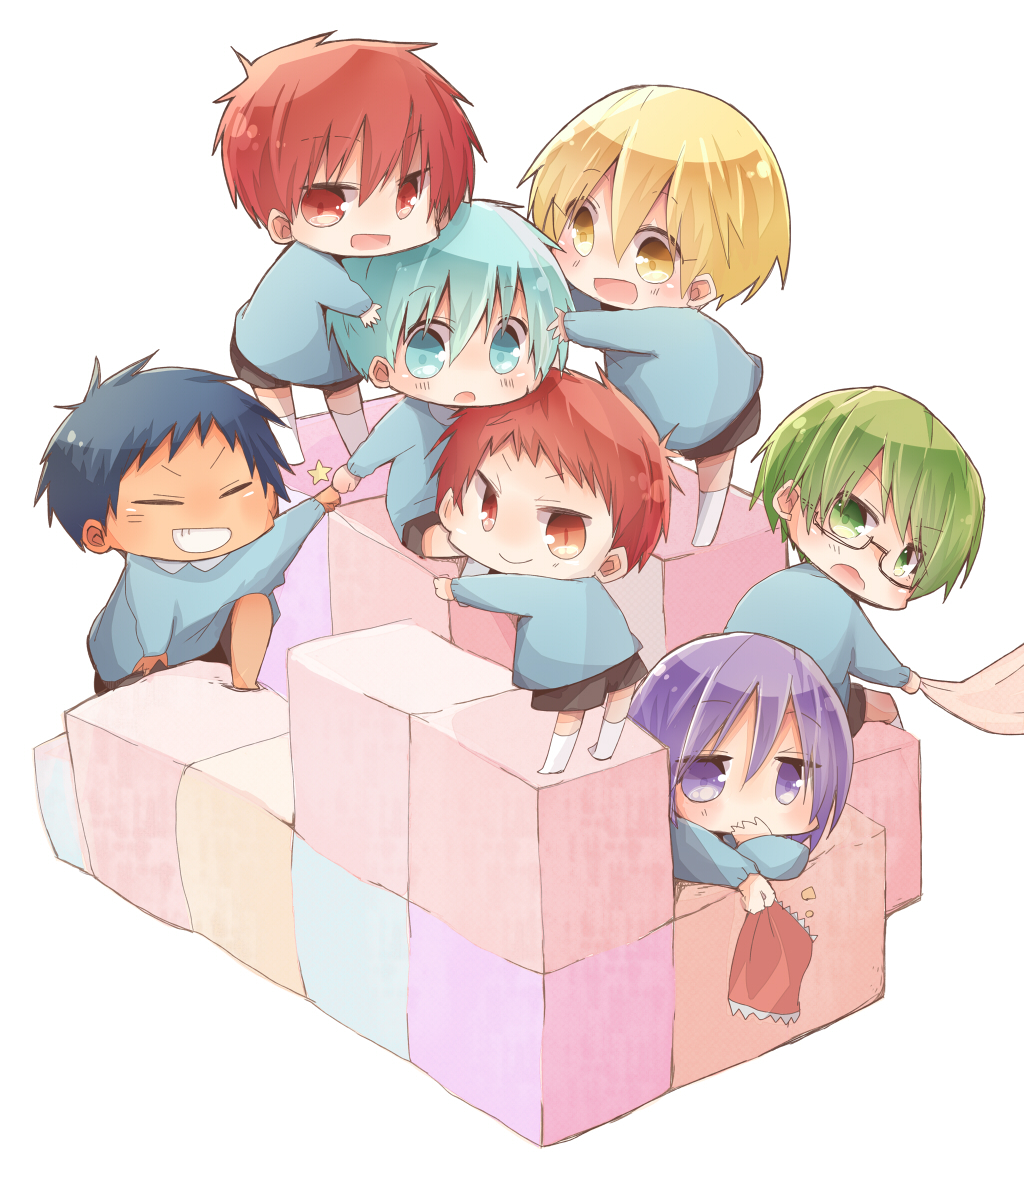 anime, cute, kuroko no basket and manga